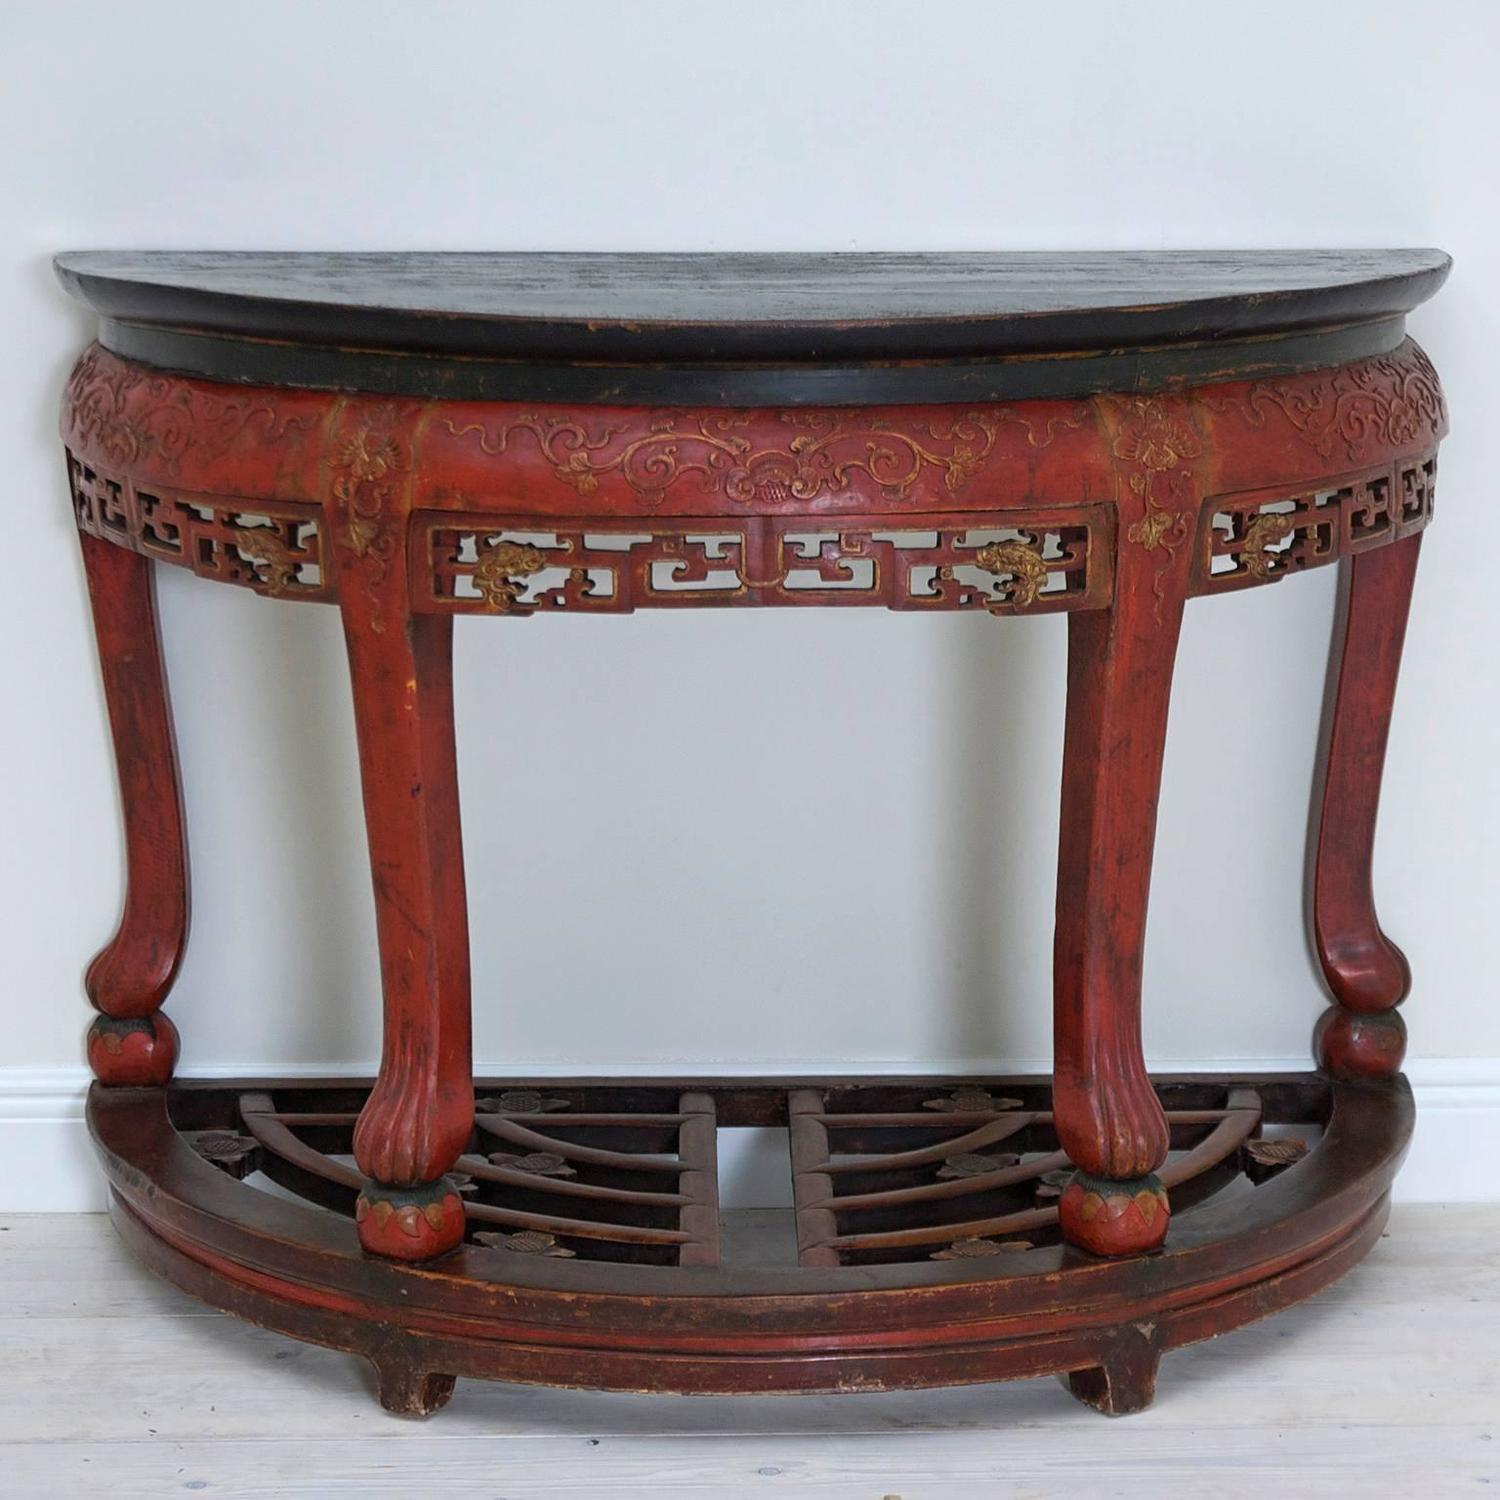 Antique Carved Red Lacquered Chinese Center Table Or Pair Of Demilune Tables